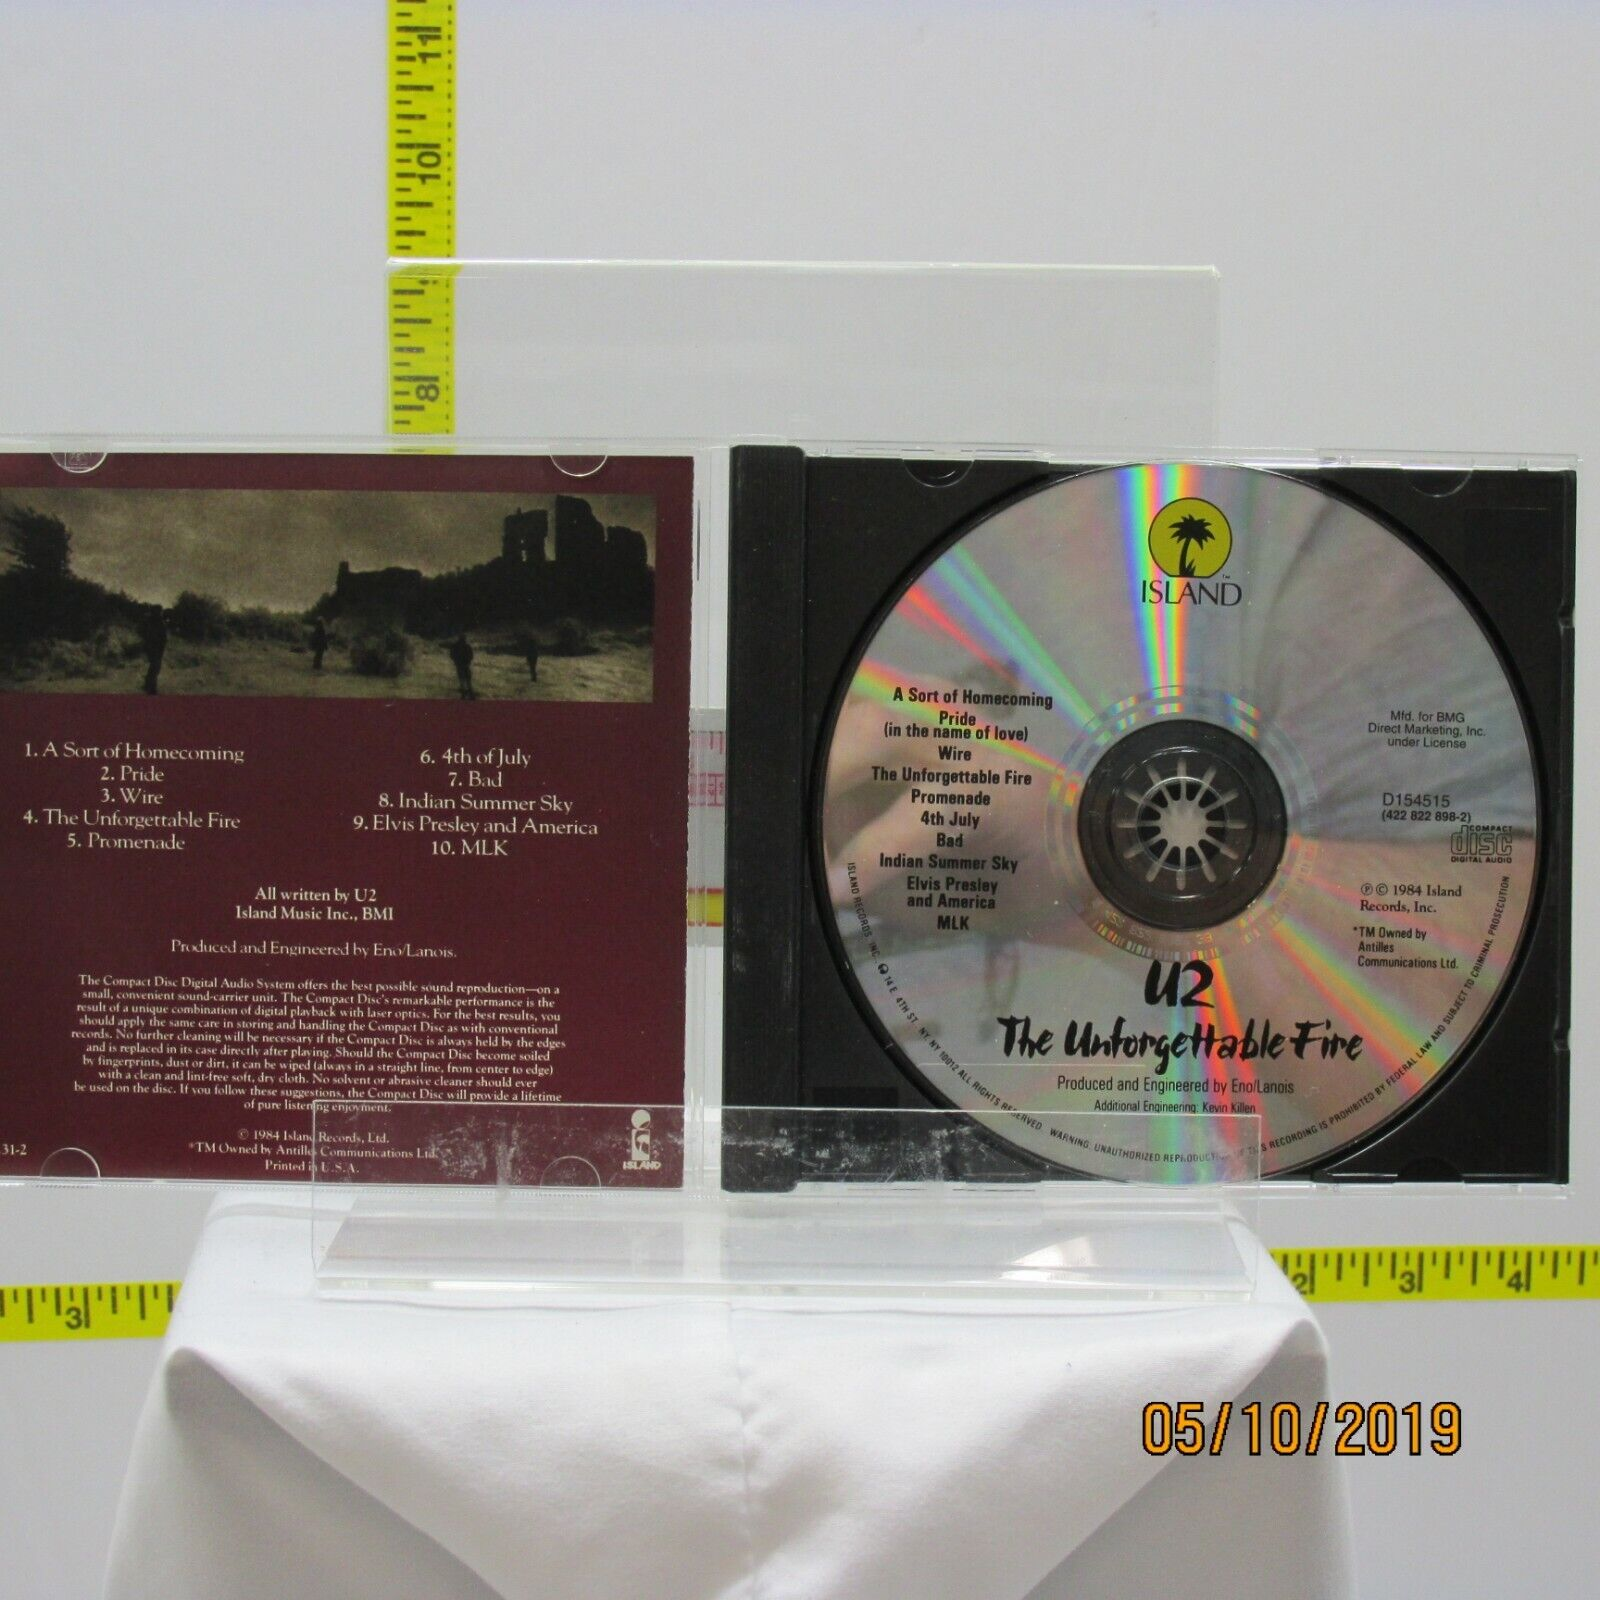 U2 Unforgettable Fire The CD